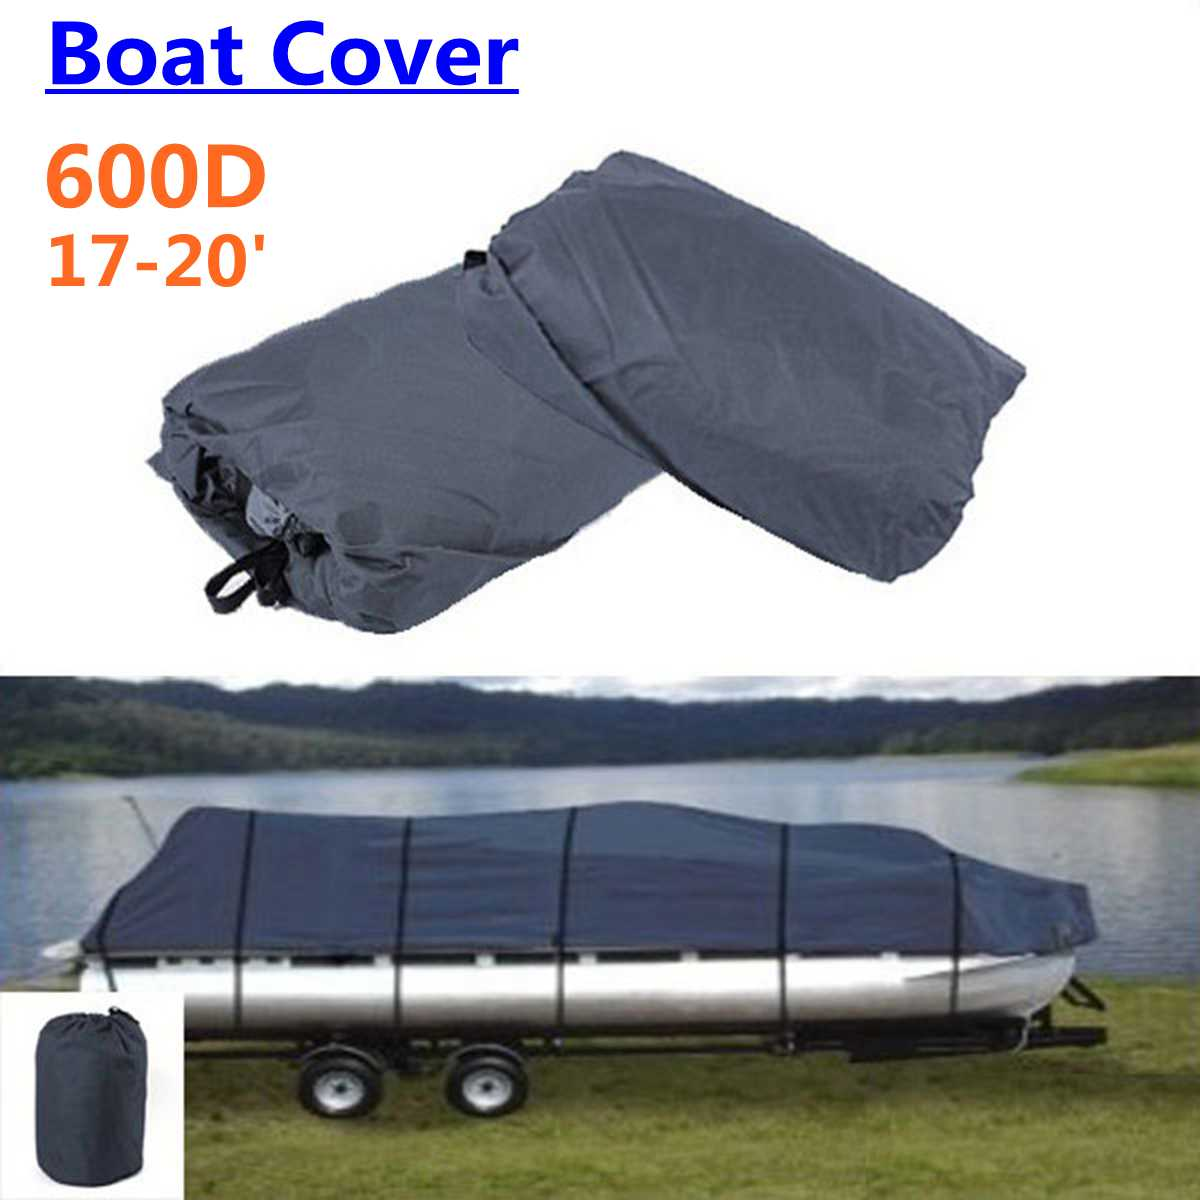 17' 18' 19' 20' Ft Pontoon Boat Cover 600D High Quality  Waterproof Polyester 610cm X 340cm